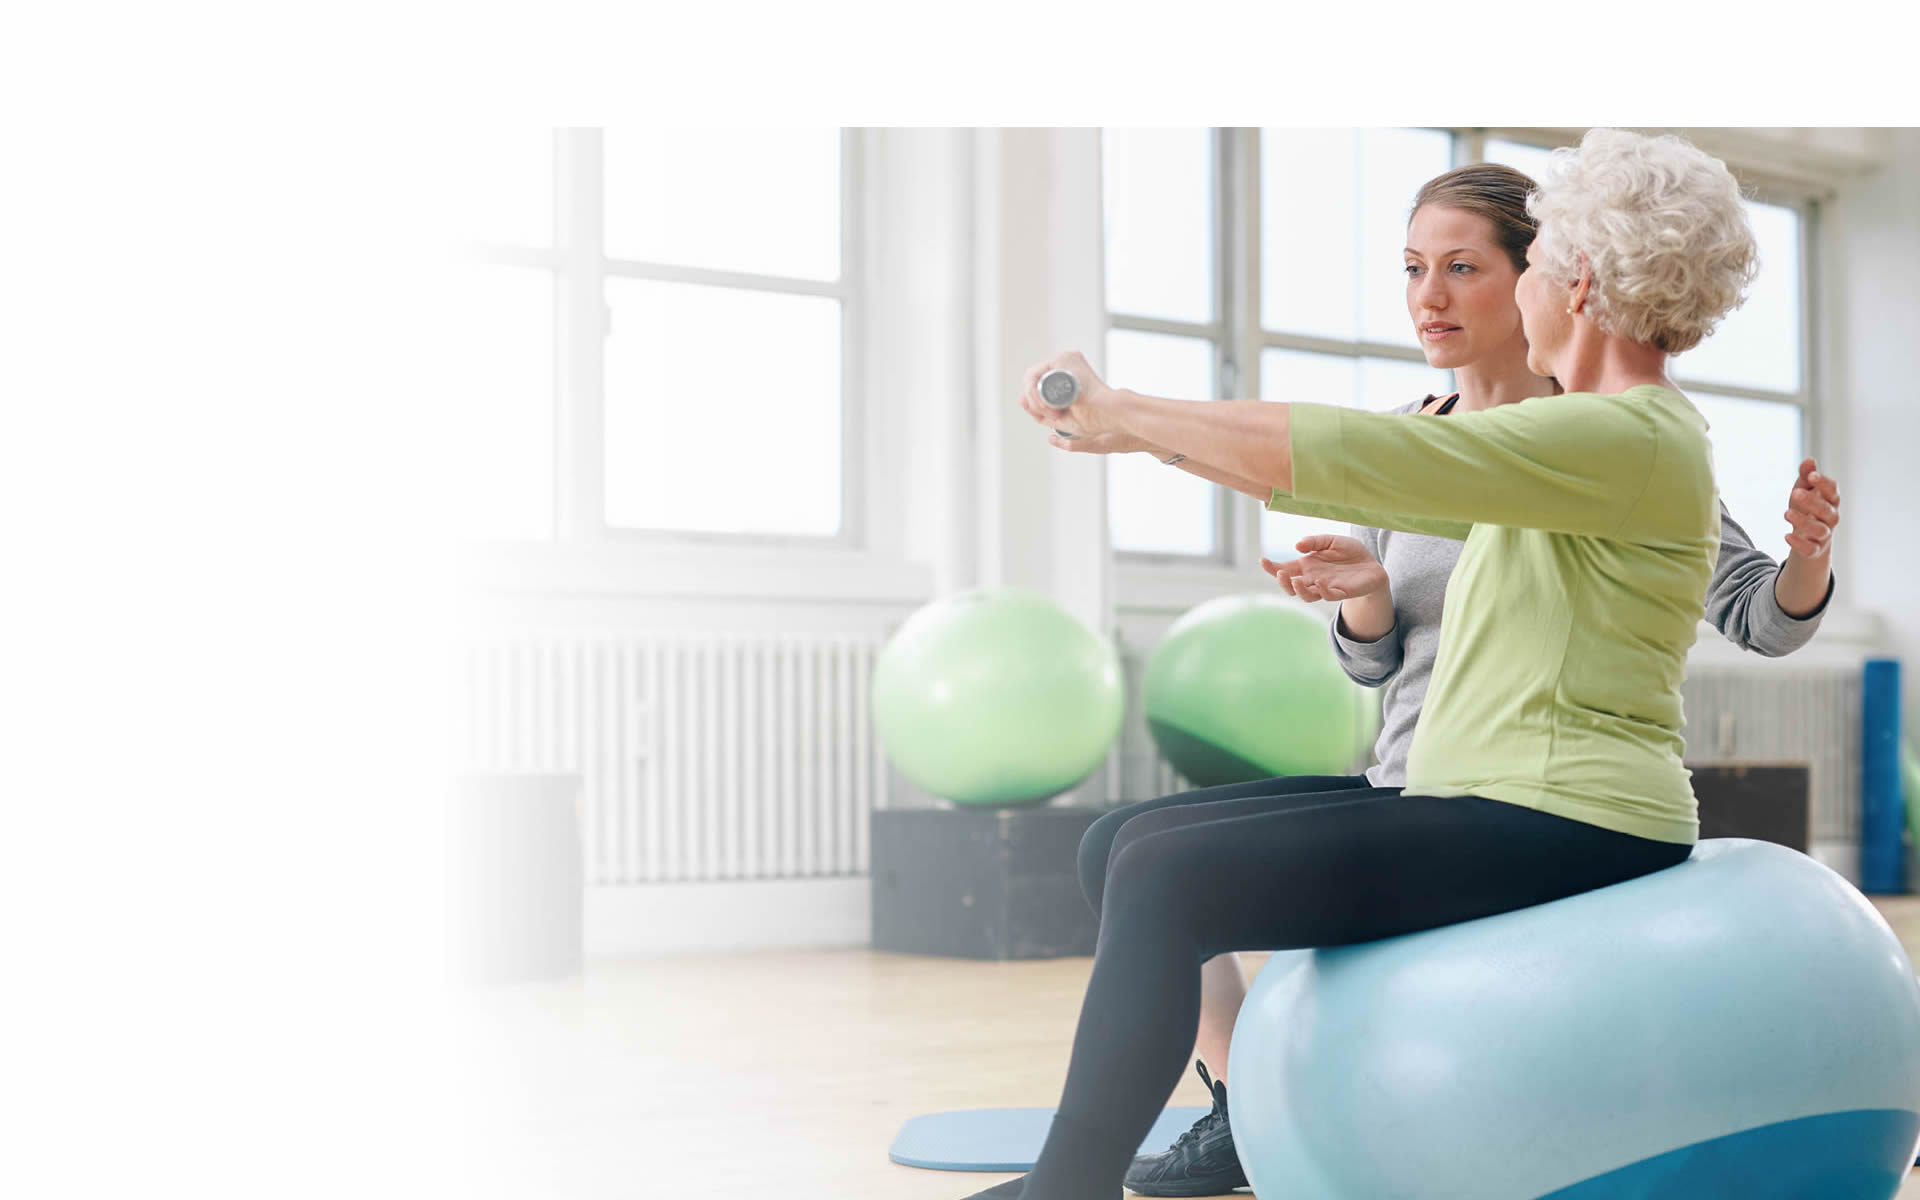 Garden state physical therapy - Physical Therapists